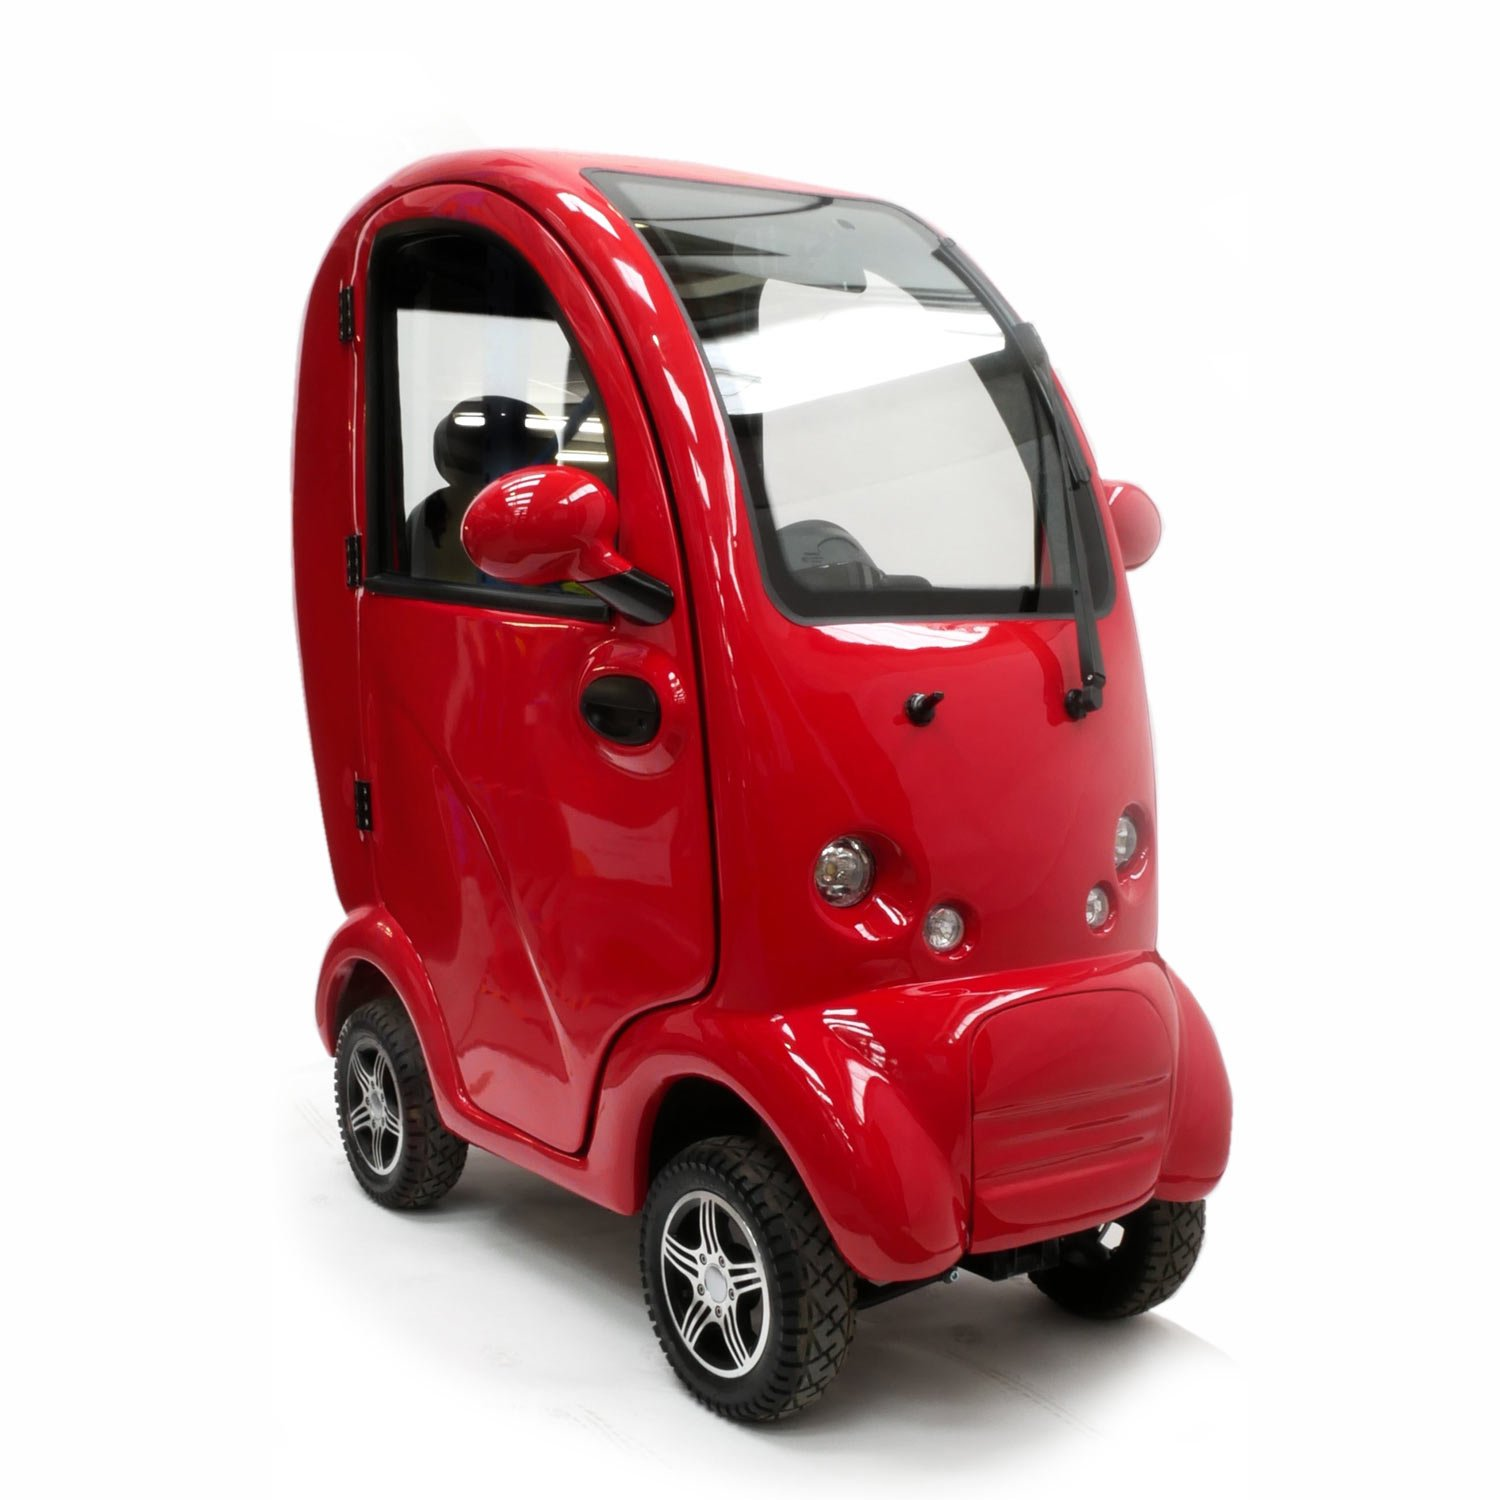 Shropshire Mobility Solutions - MK2 Cabin Car Suppliers - red mk2 cabin car for sale